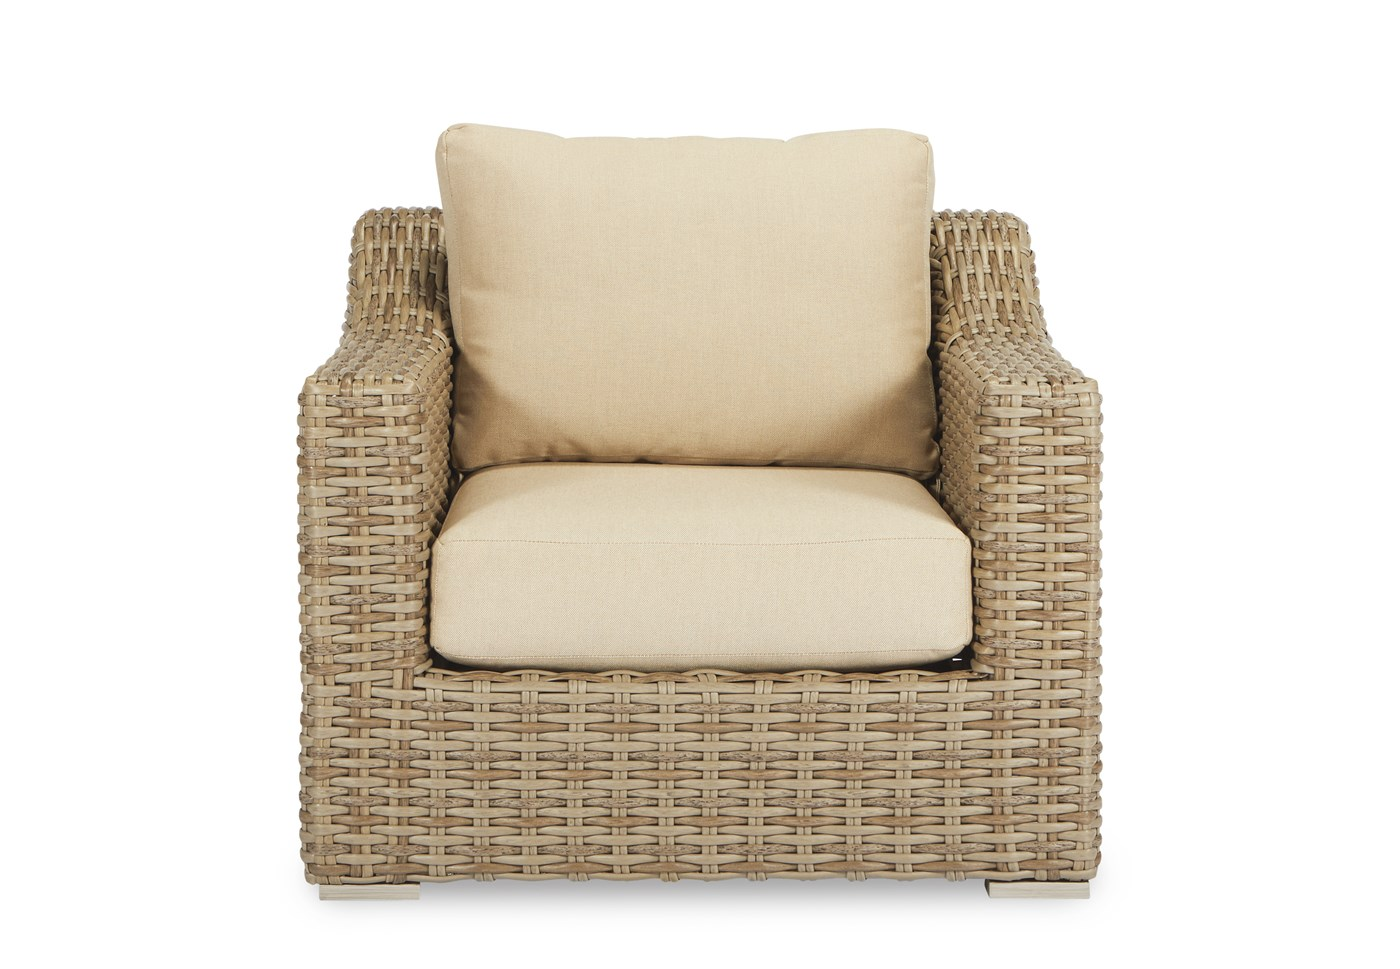 Sorrento Lounge Chair Chairs Chaises Outdoor Robb